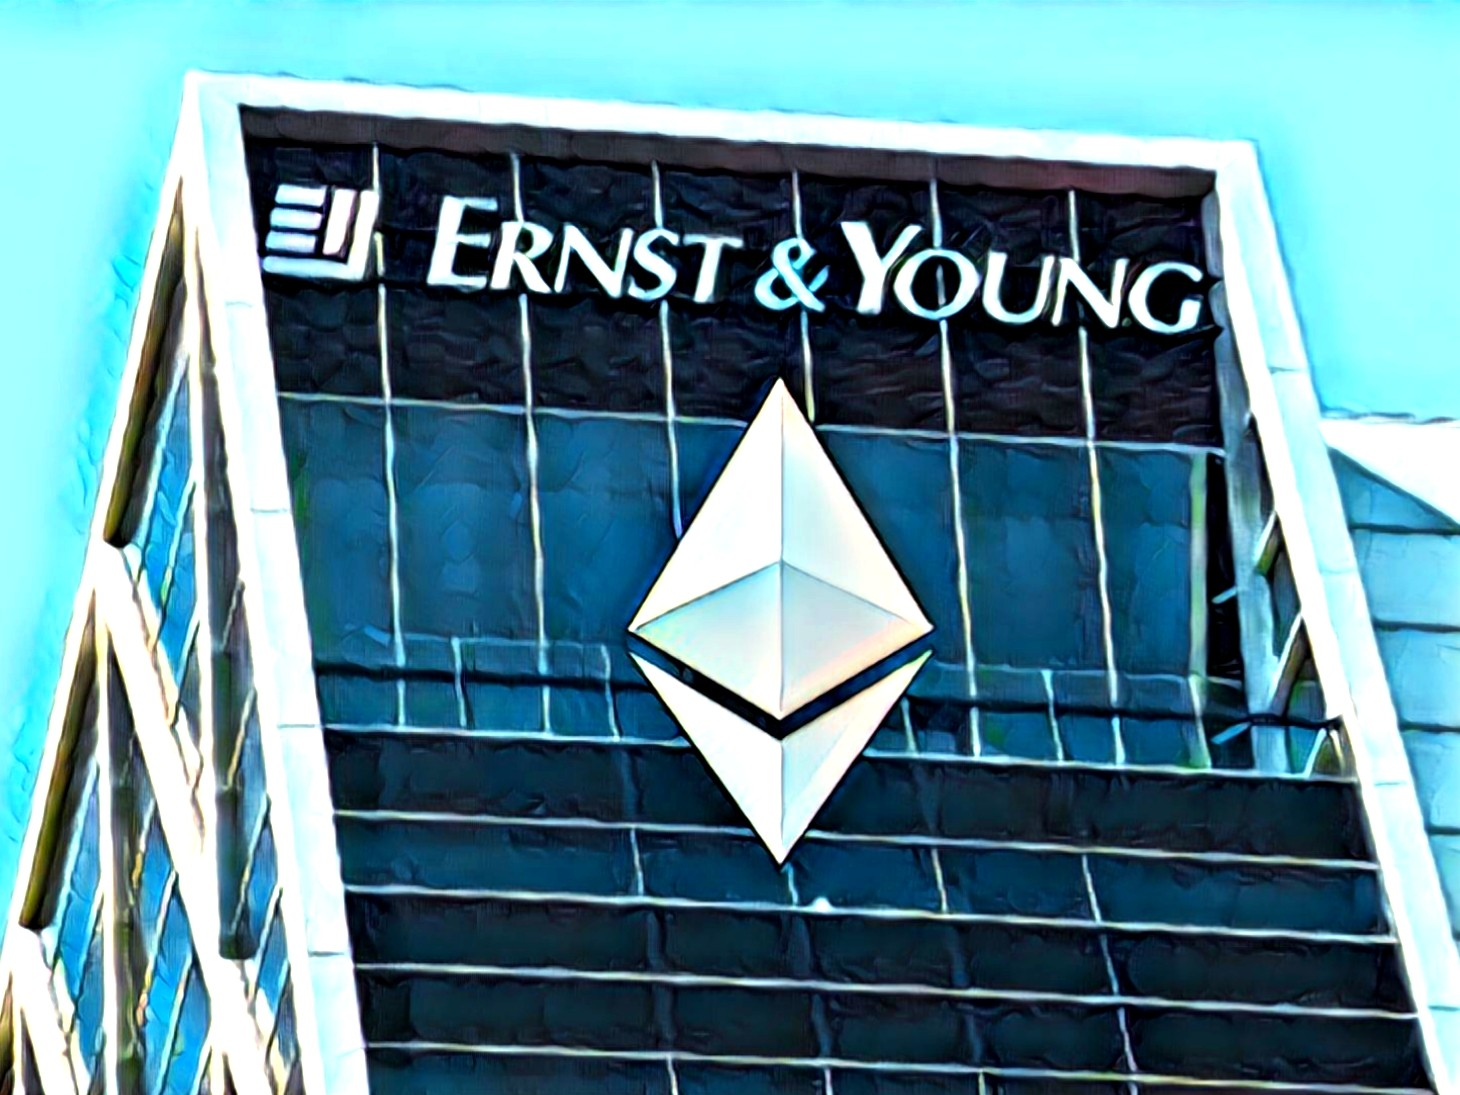 Ethereum ETH Ernst and Young